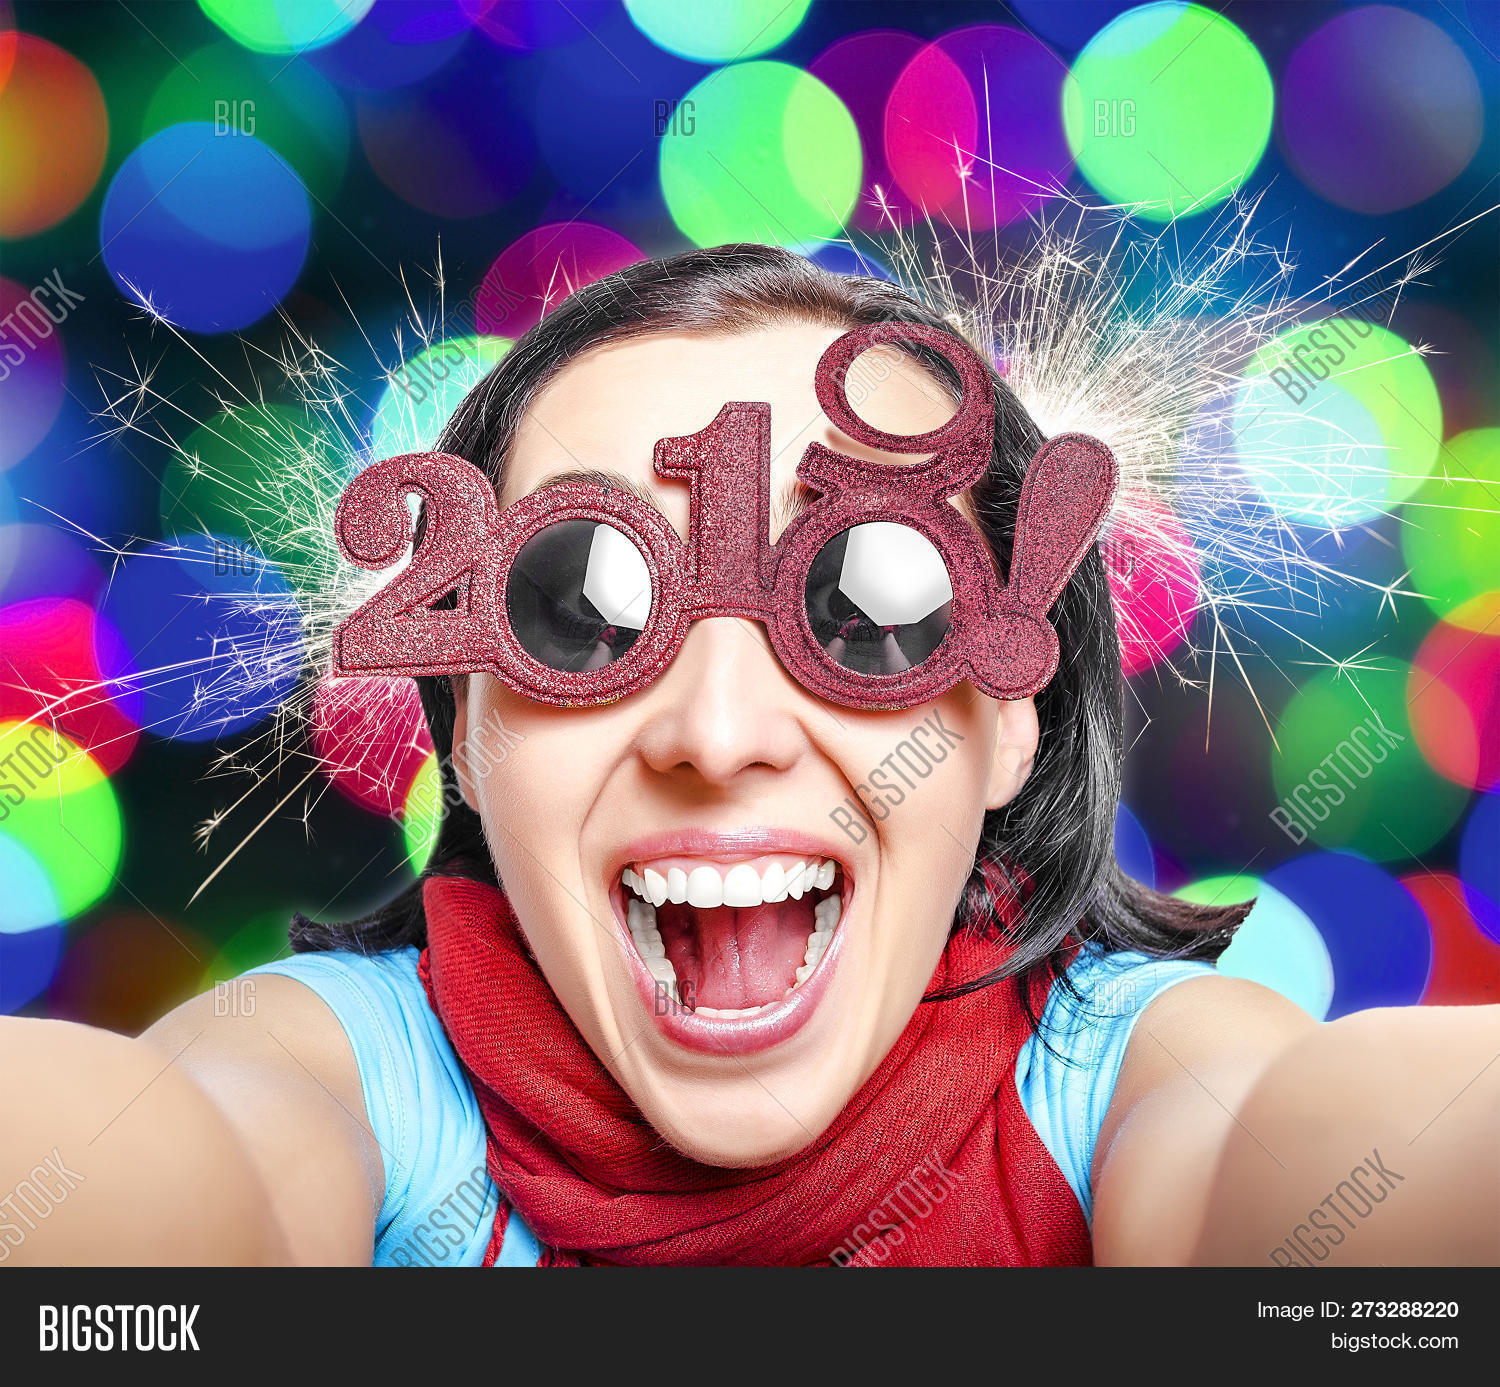 2019,Nineteen,advertisement,announcement,beautiful,beauty,blank,celebration,christmas,color,cute,eve,face,female,fresh,girl,glasses,happy,holiday,joy,look,looking,model,natural,new,notice,people,person,photo,portrait,present,pretty,red,santa,selfie,smile,smiling,statement,studio,sunglasses,sweet,symbols,traditional,white,woman,women,xmas,year,young